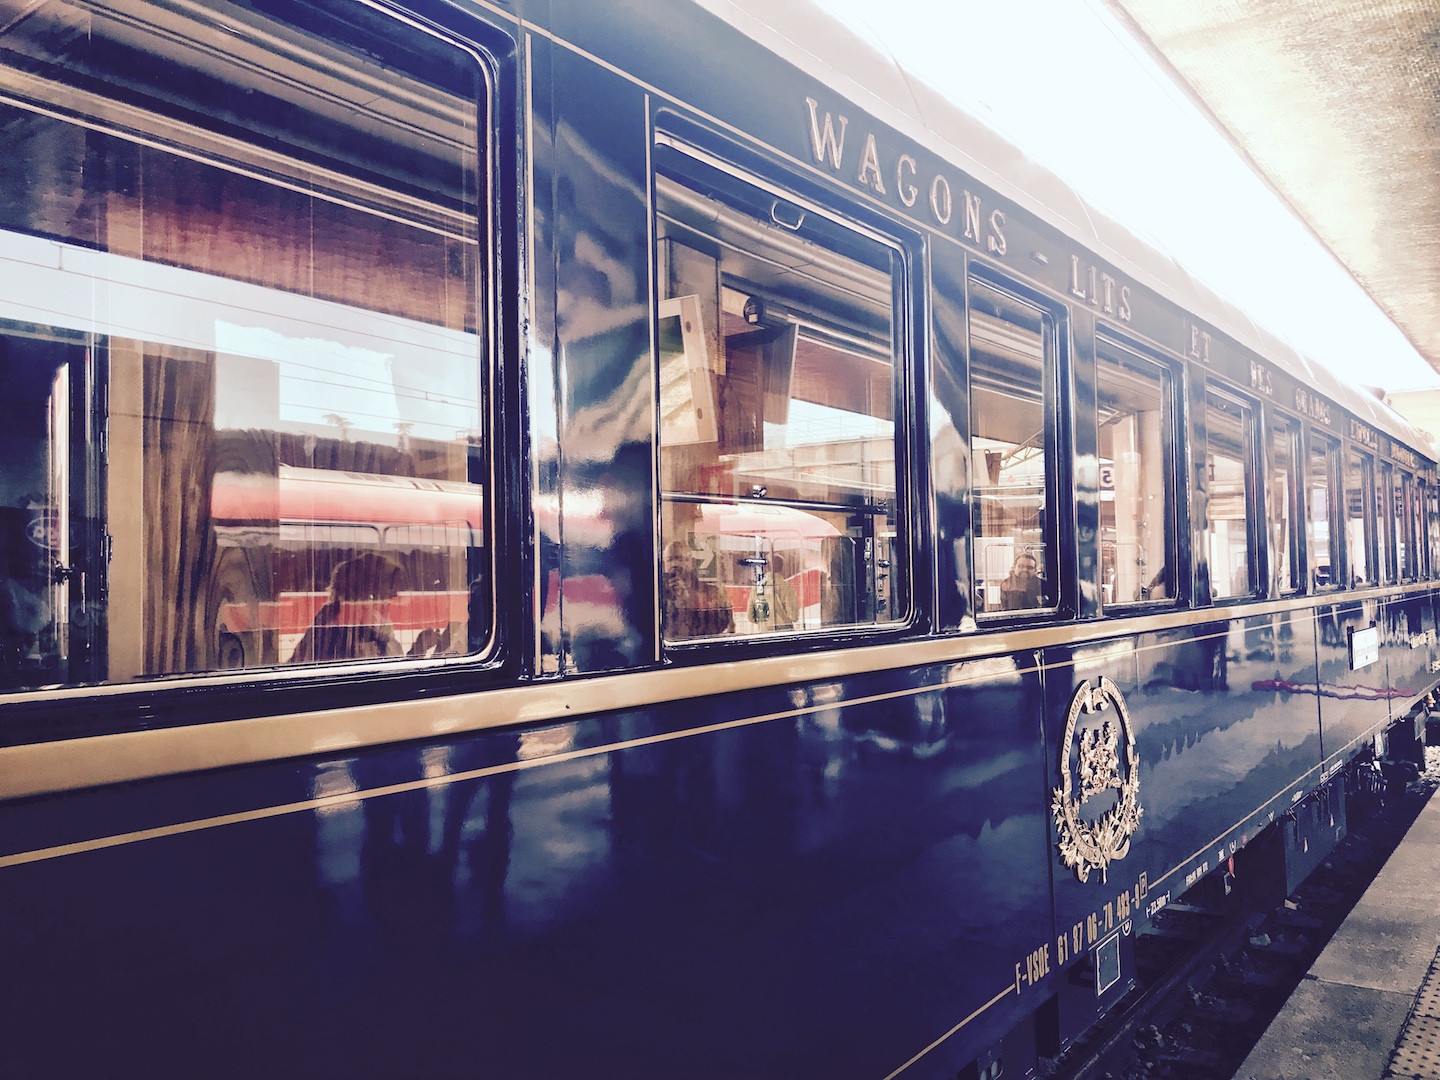 Venice Simplon Orient Express Luxusreisen Travel Blog Reisen 8